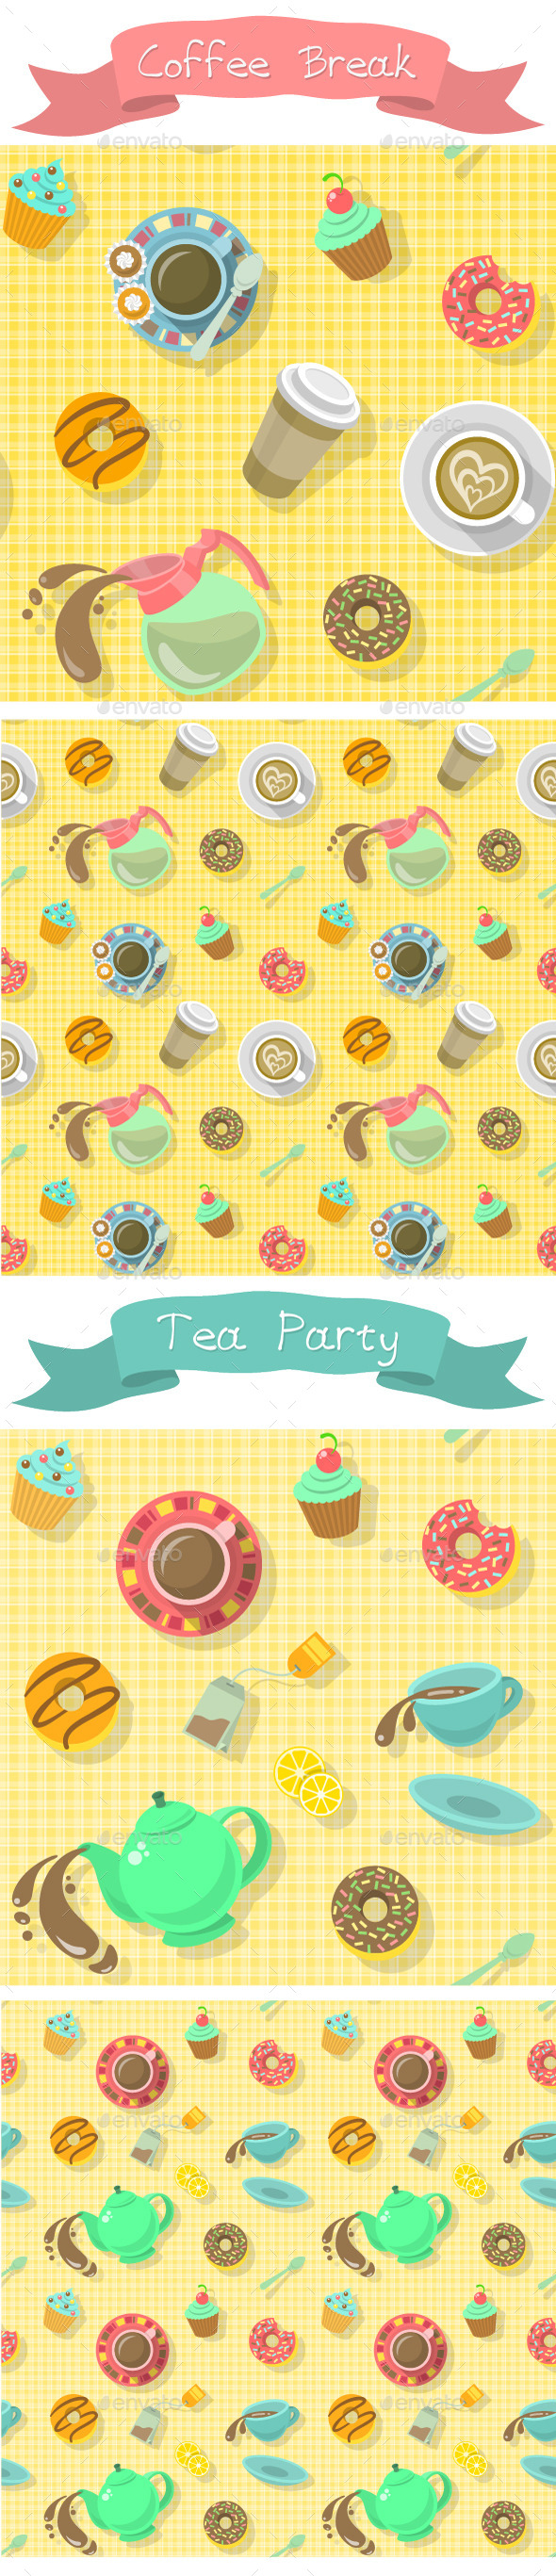 GraphicRiver Coffee Break and Tea Party Patterns 9183704